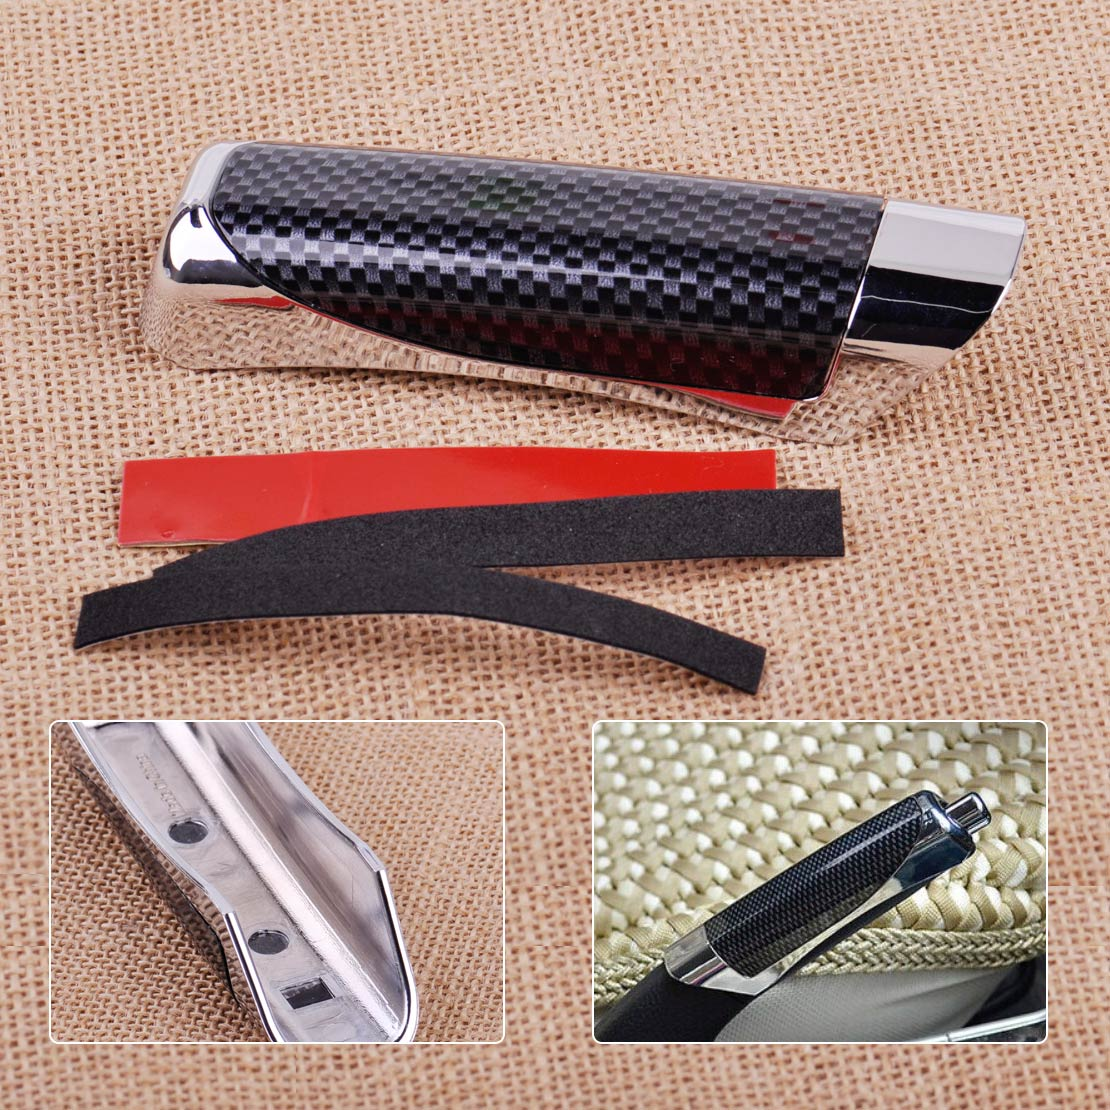 CITALL Carbon Fiber Style Car Auto Hand Brake Handle Cover Protector Decor Acc For Ford Mercedes VW BMW Mazda Kia Honda Suzuki